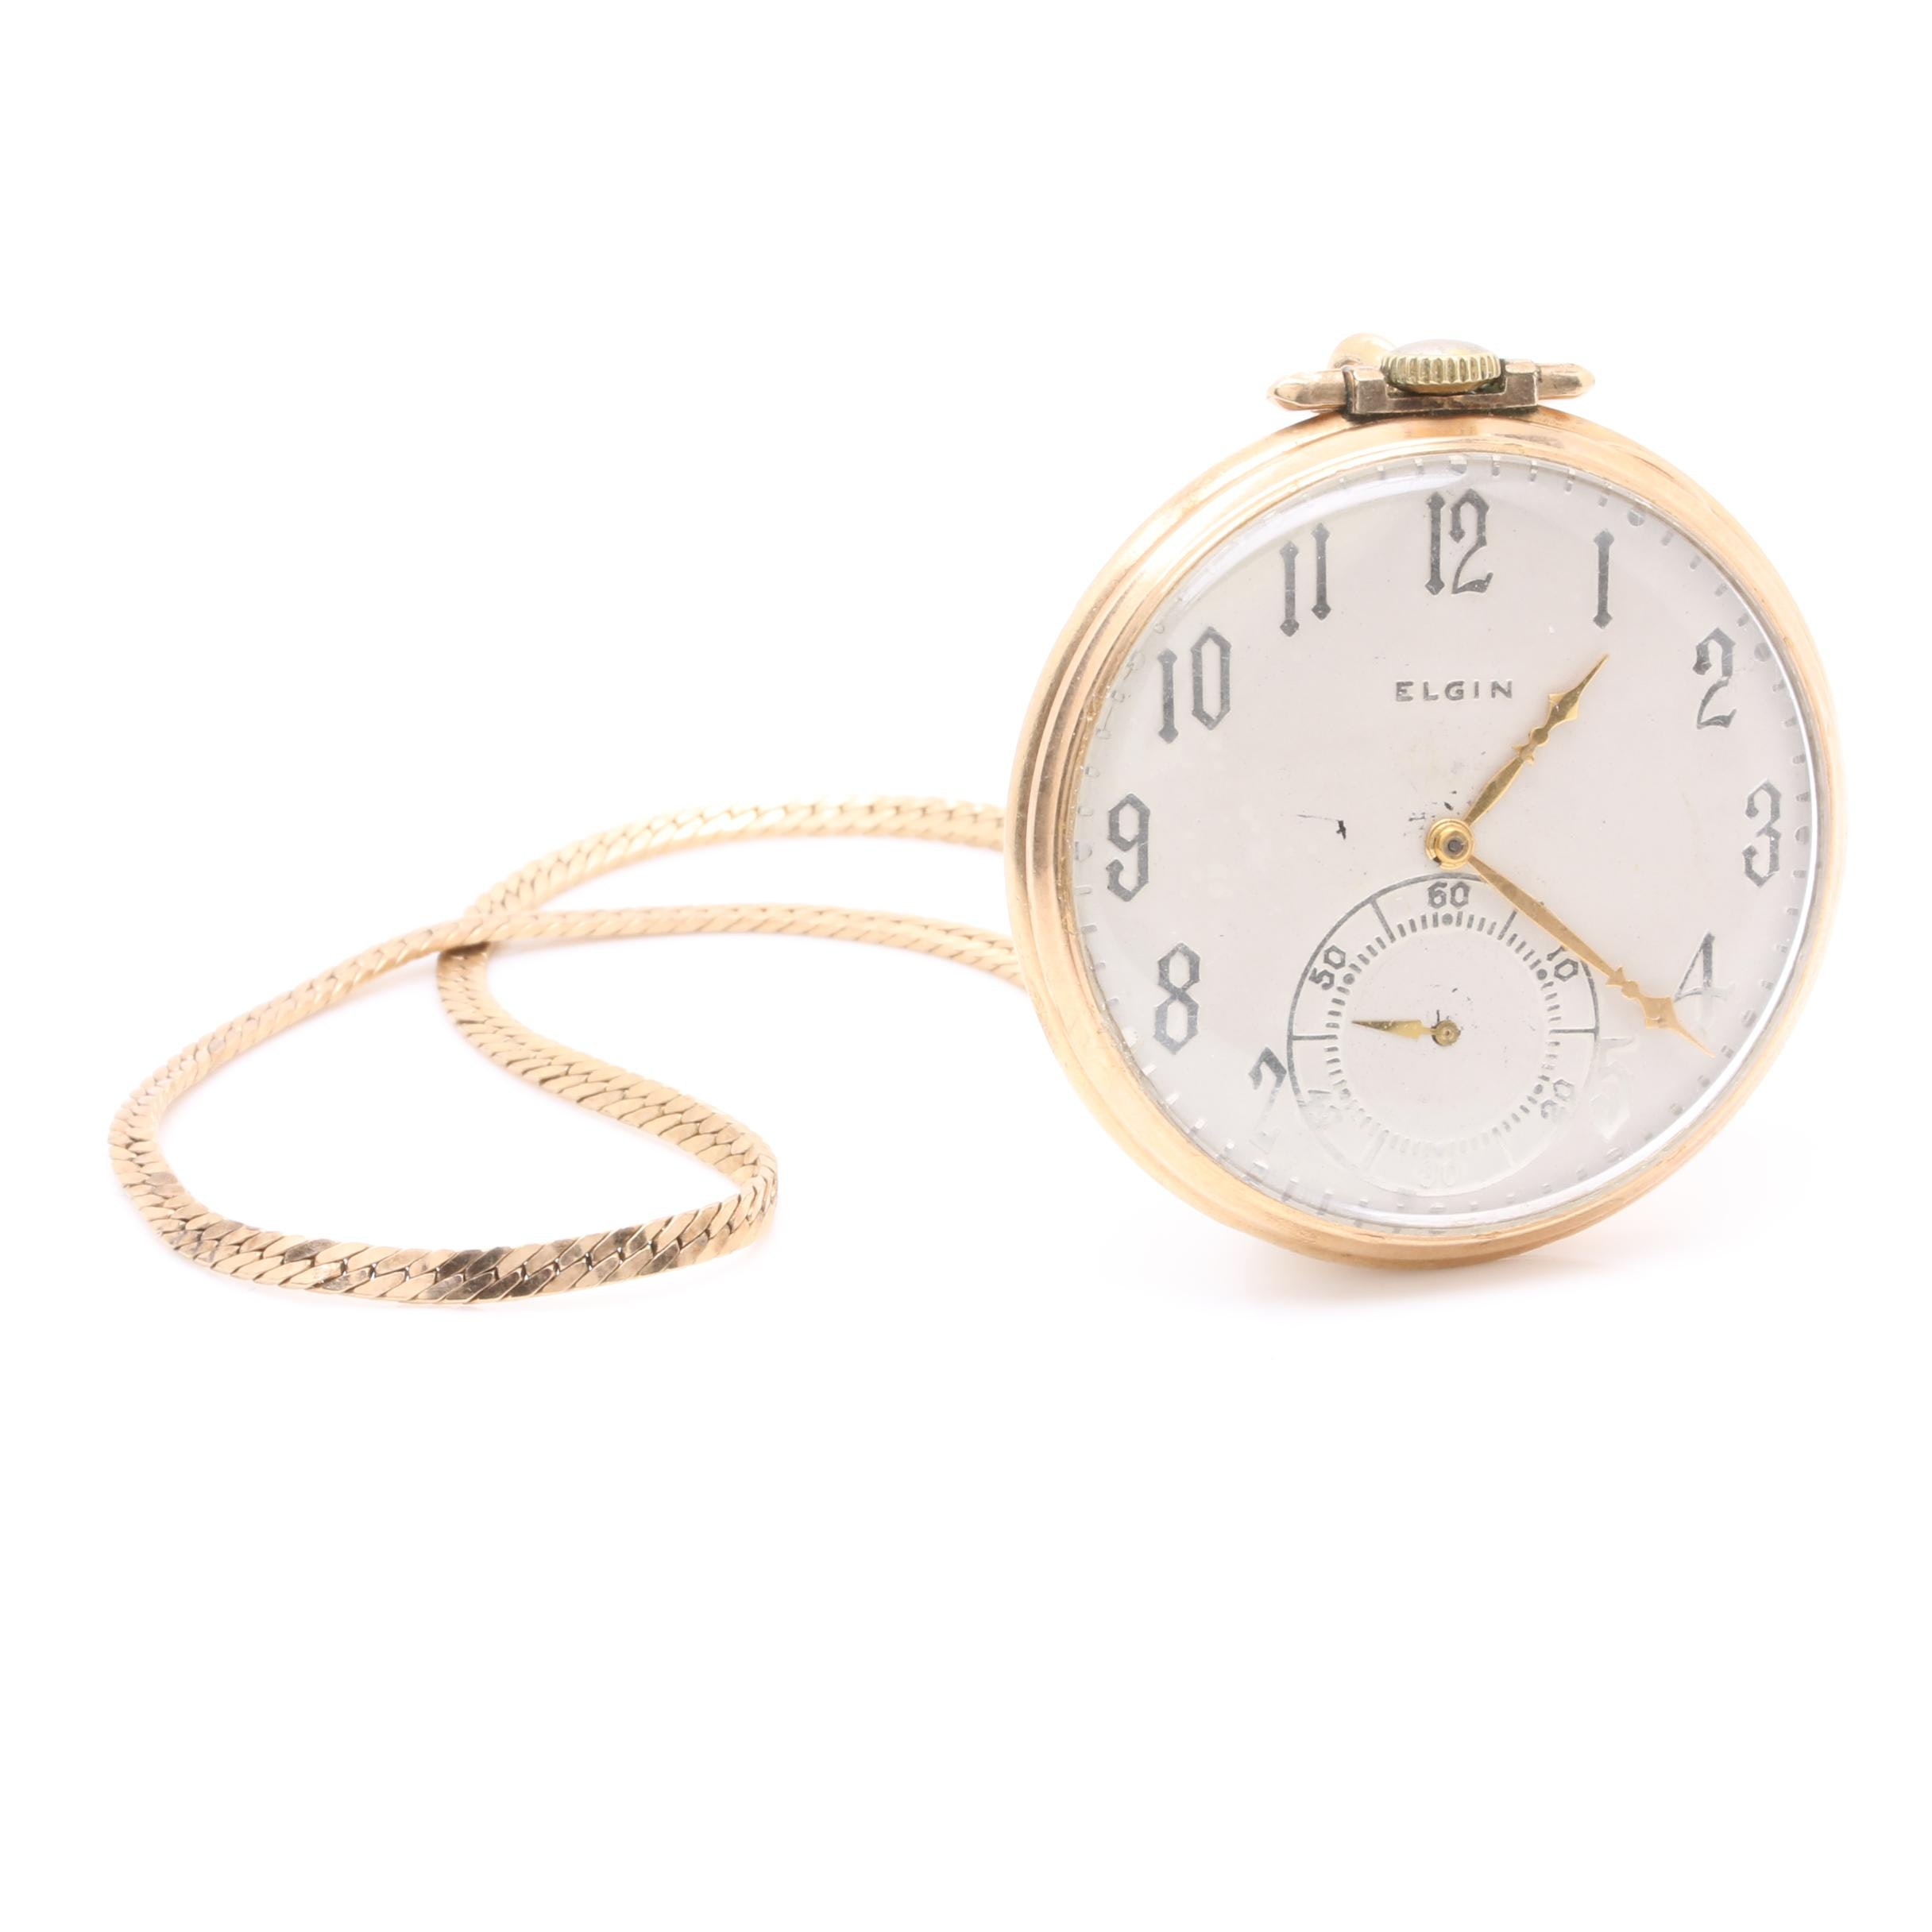 Elgin 10K Rolled Gold Plated Pocket Watch with Gold-Filled Fob